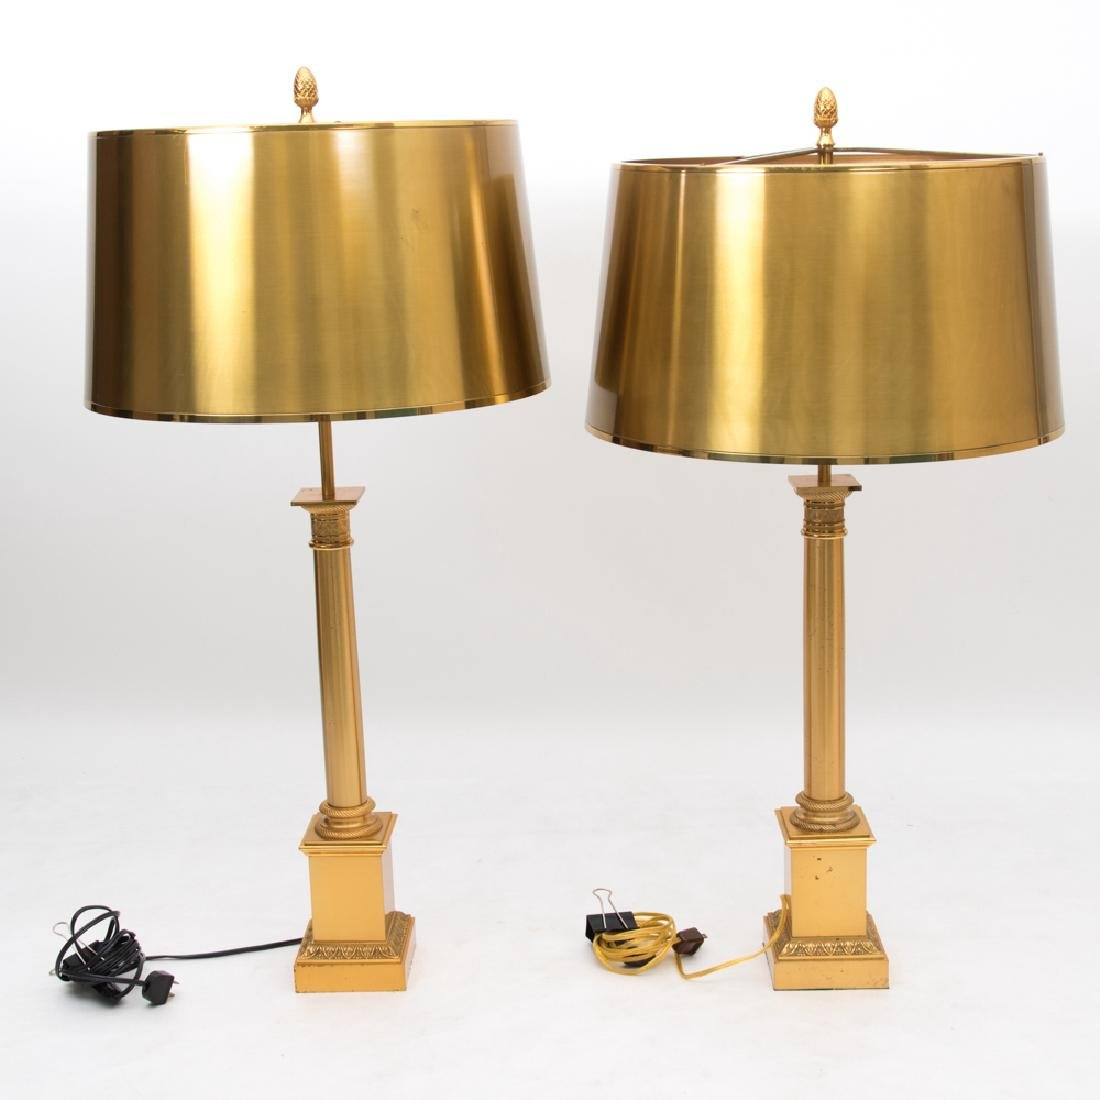 A Pair of Neoclassical Style Brass Column Form Table